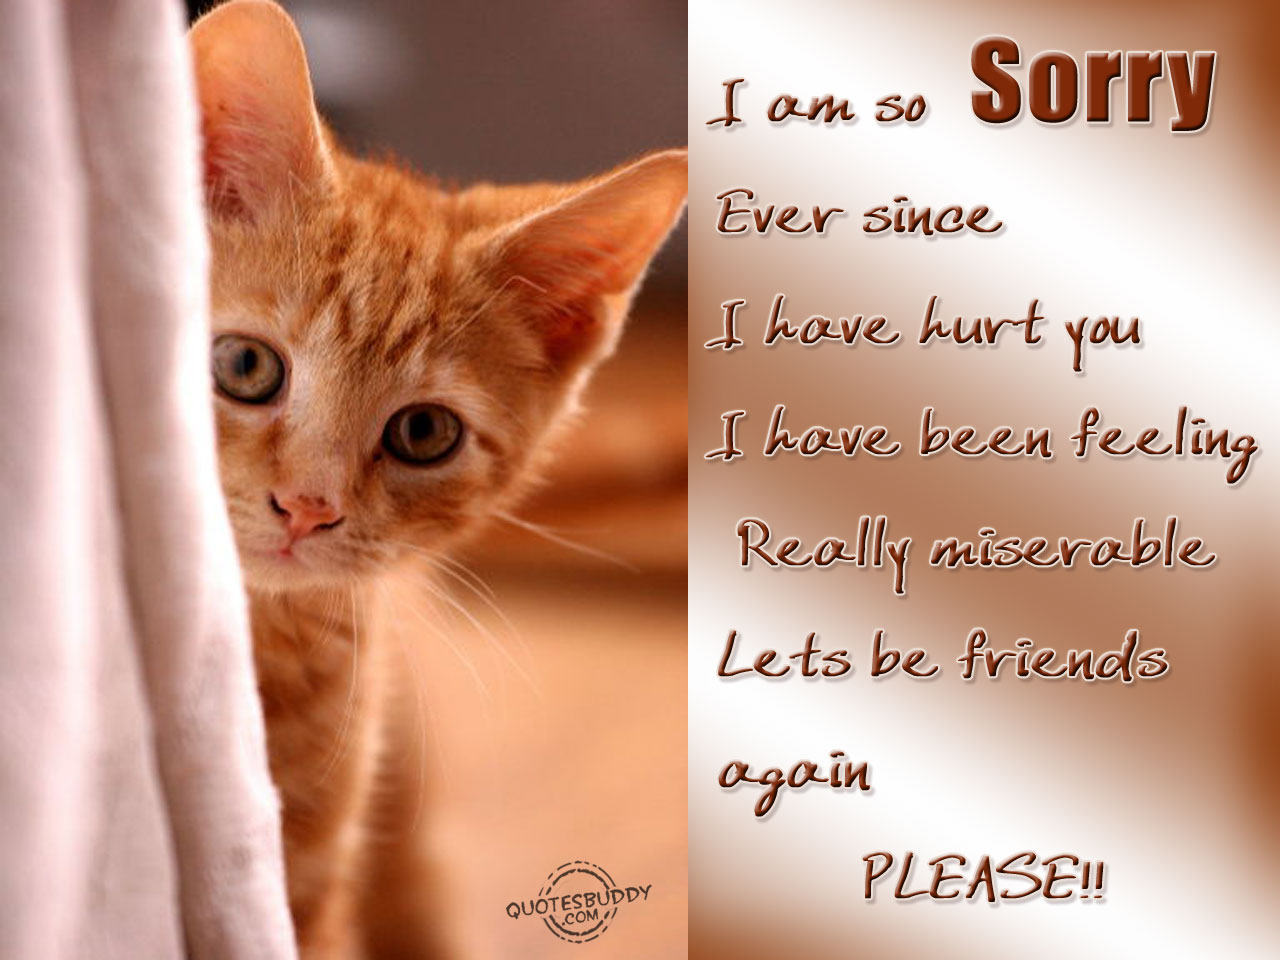 quotes about sorry (554 quotes)